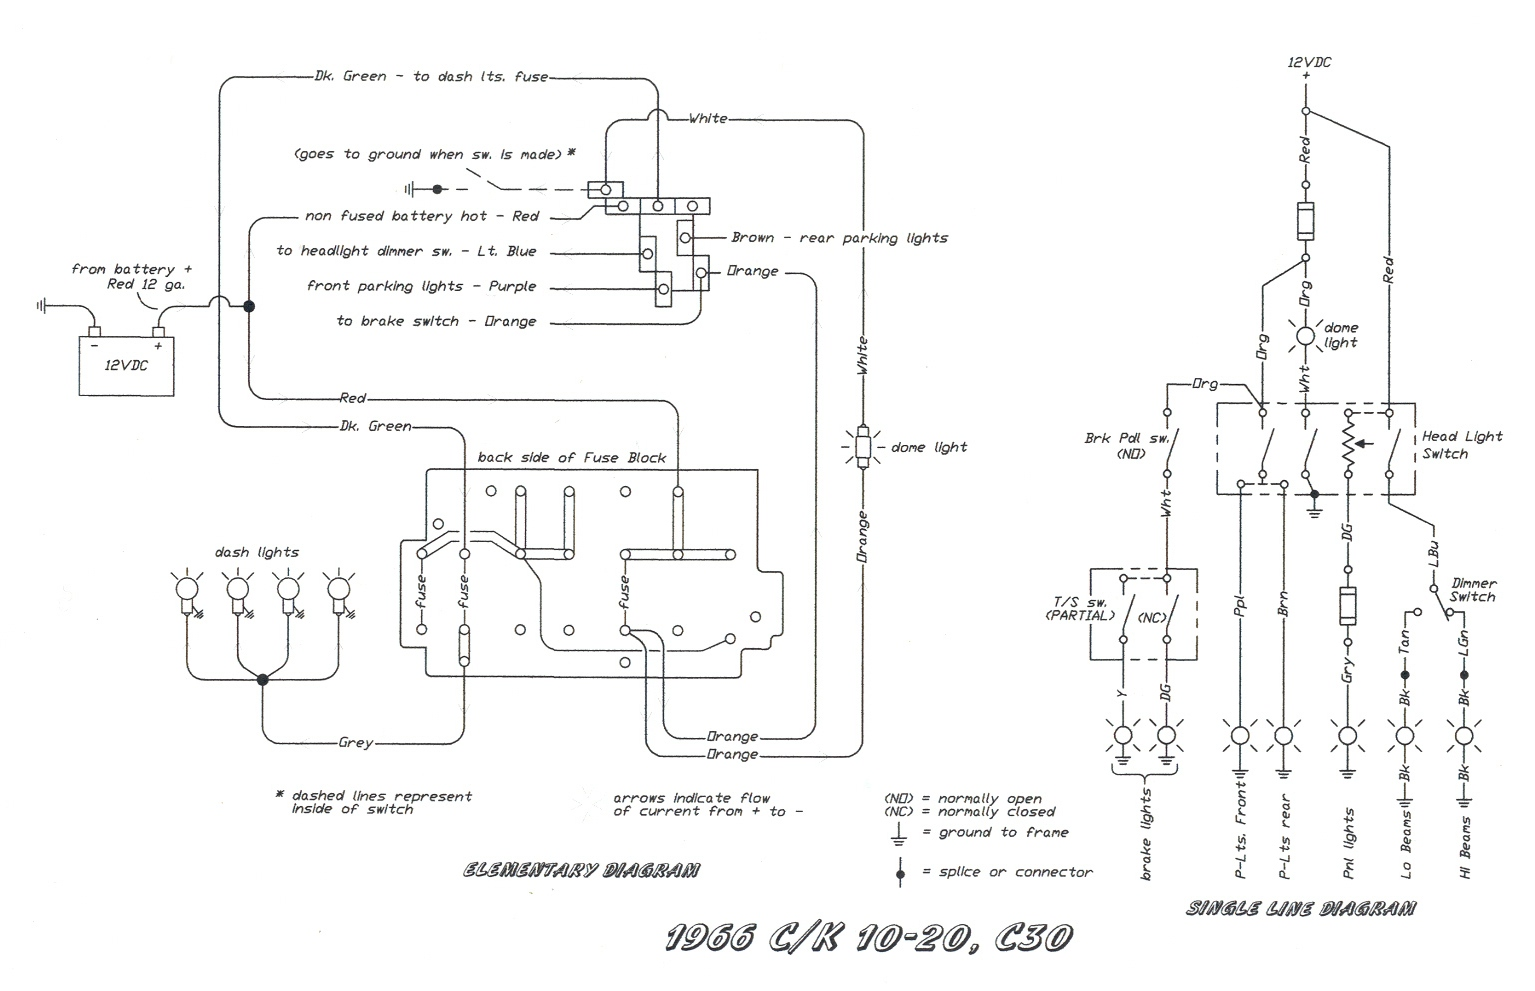 1962 f100 wiring diagram wiring diagram for you 64 ford f100 headlight wiring [ 1535 x 991 Pixel ]